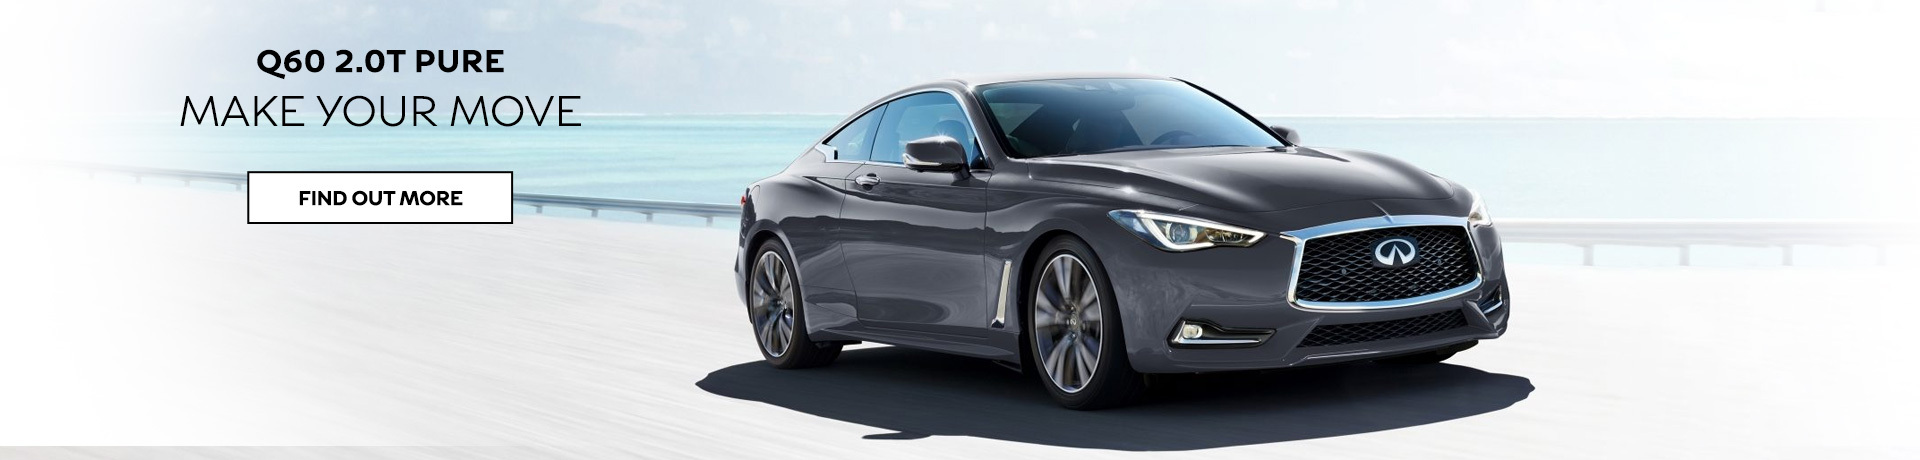 Infiniti - Feb Offer - Make your move